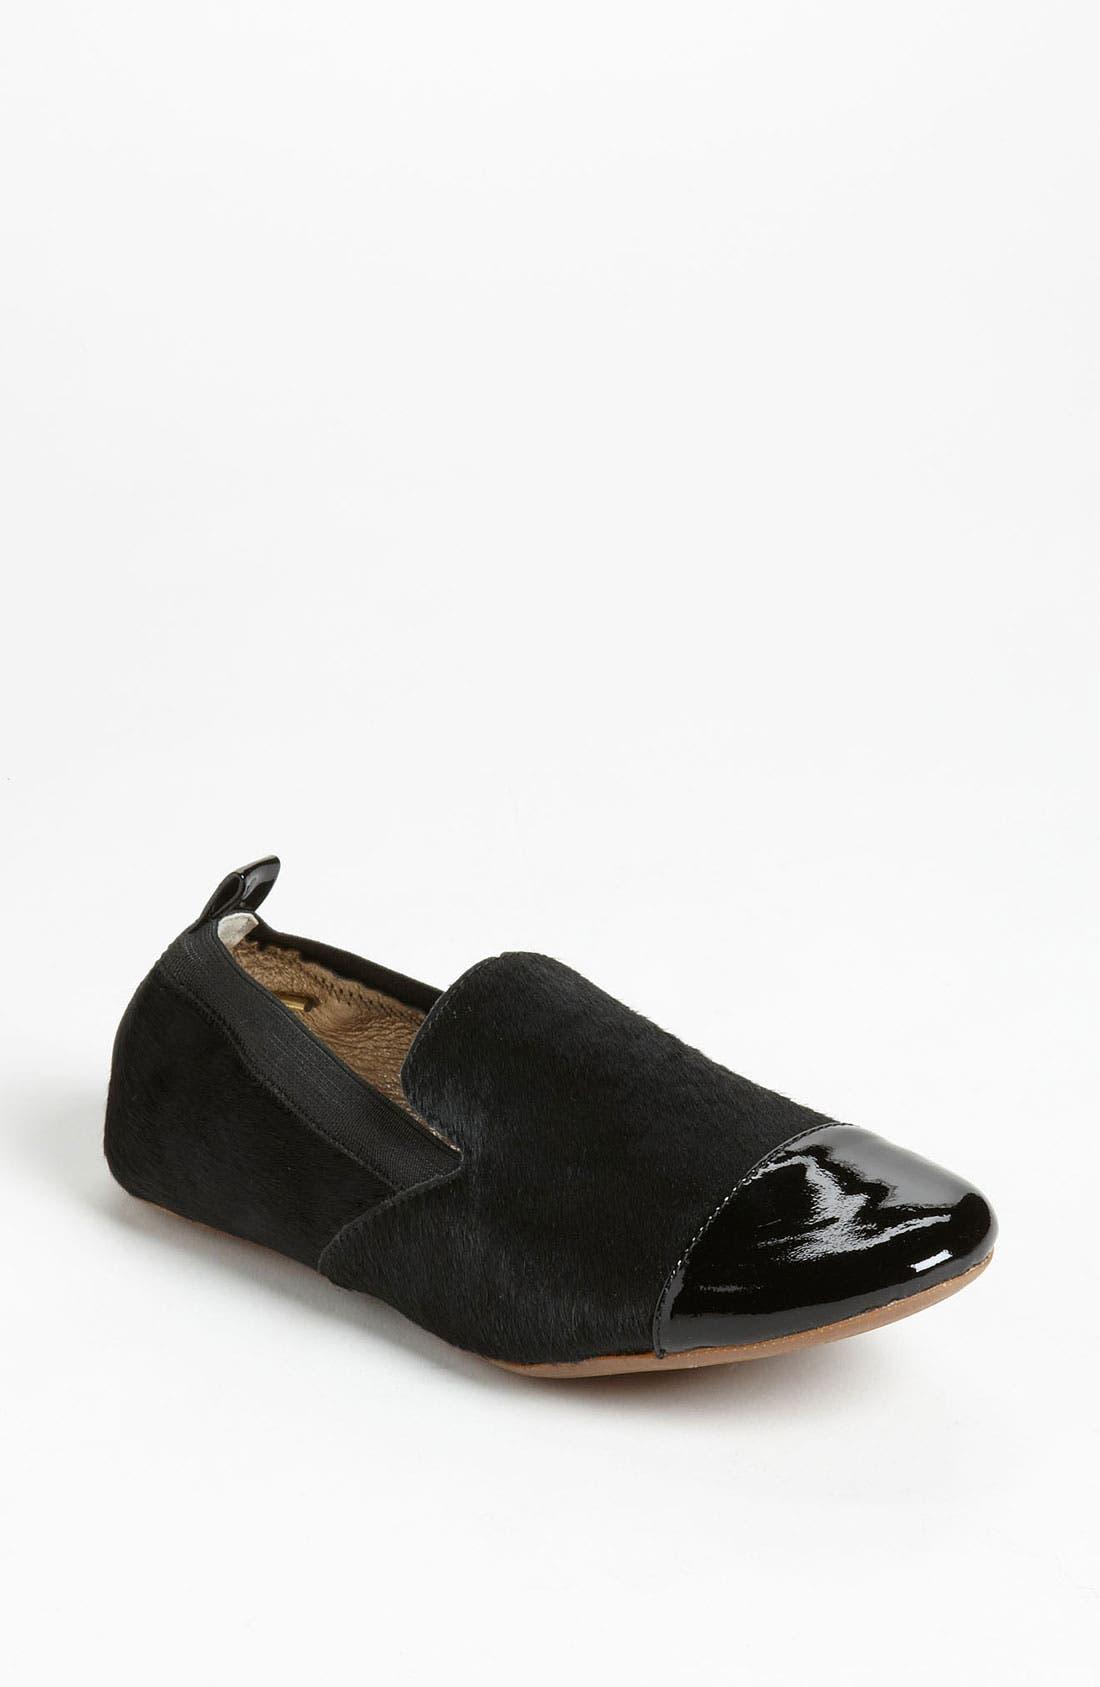 Alternate Image 1 Selected - Yosi Samra 'Ariel' Loafer